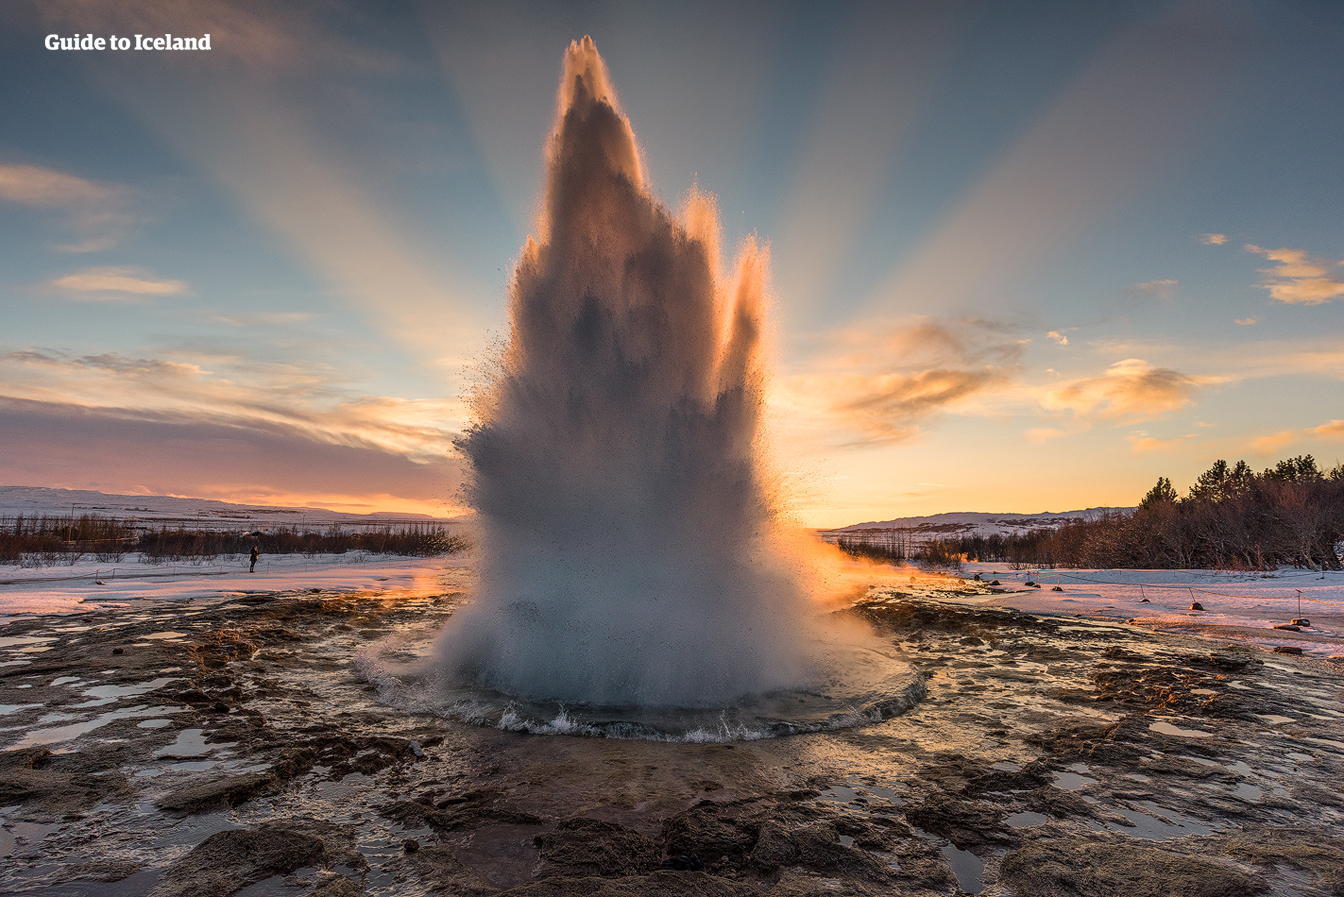 The Golden Circle includes Geysir geothermal area